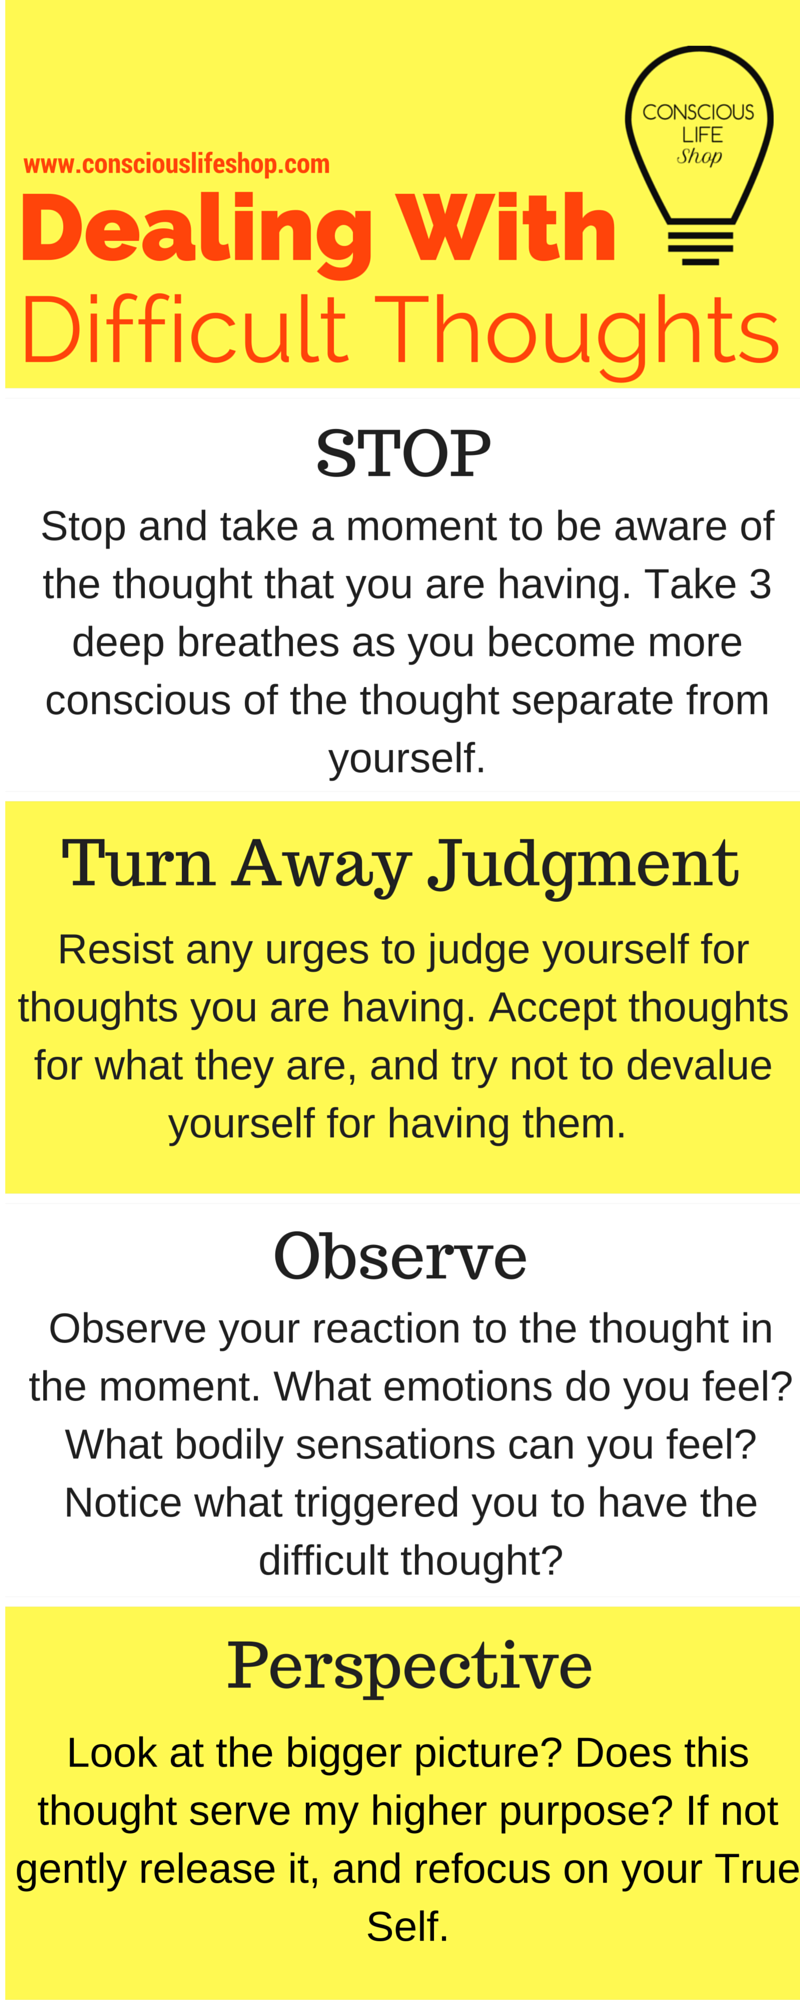 Worksheets Thought Stopping Worksheet thought stopping technique to get out of your head meditation conscious life shop